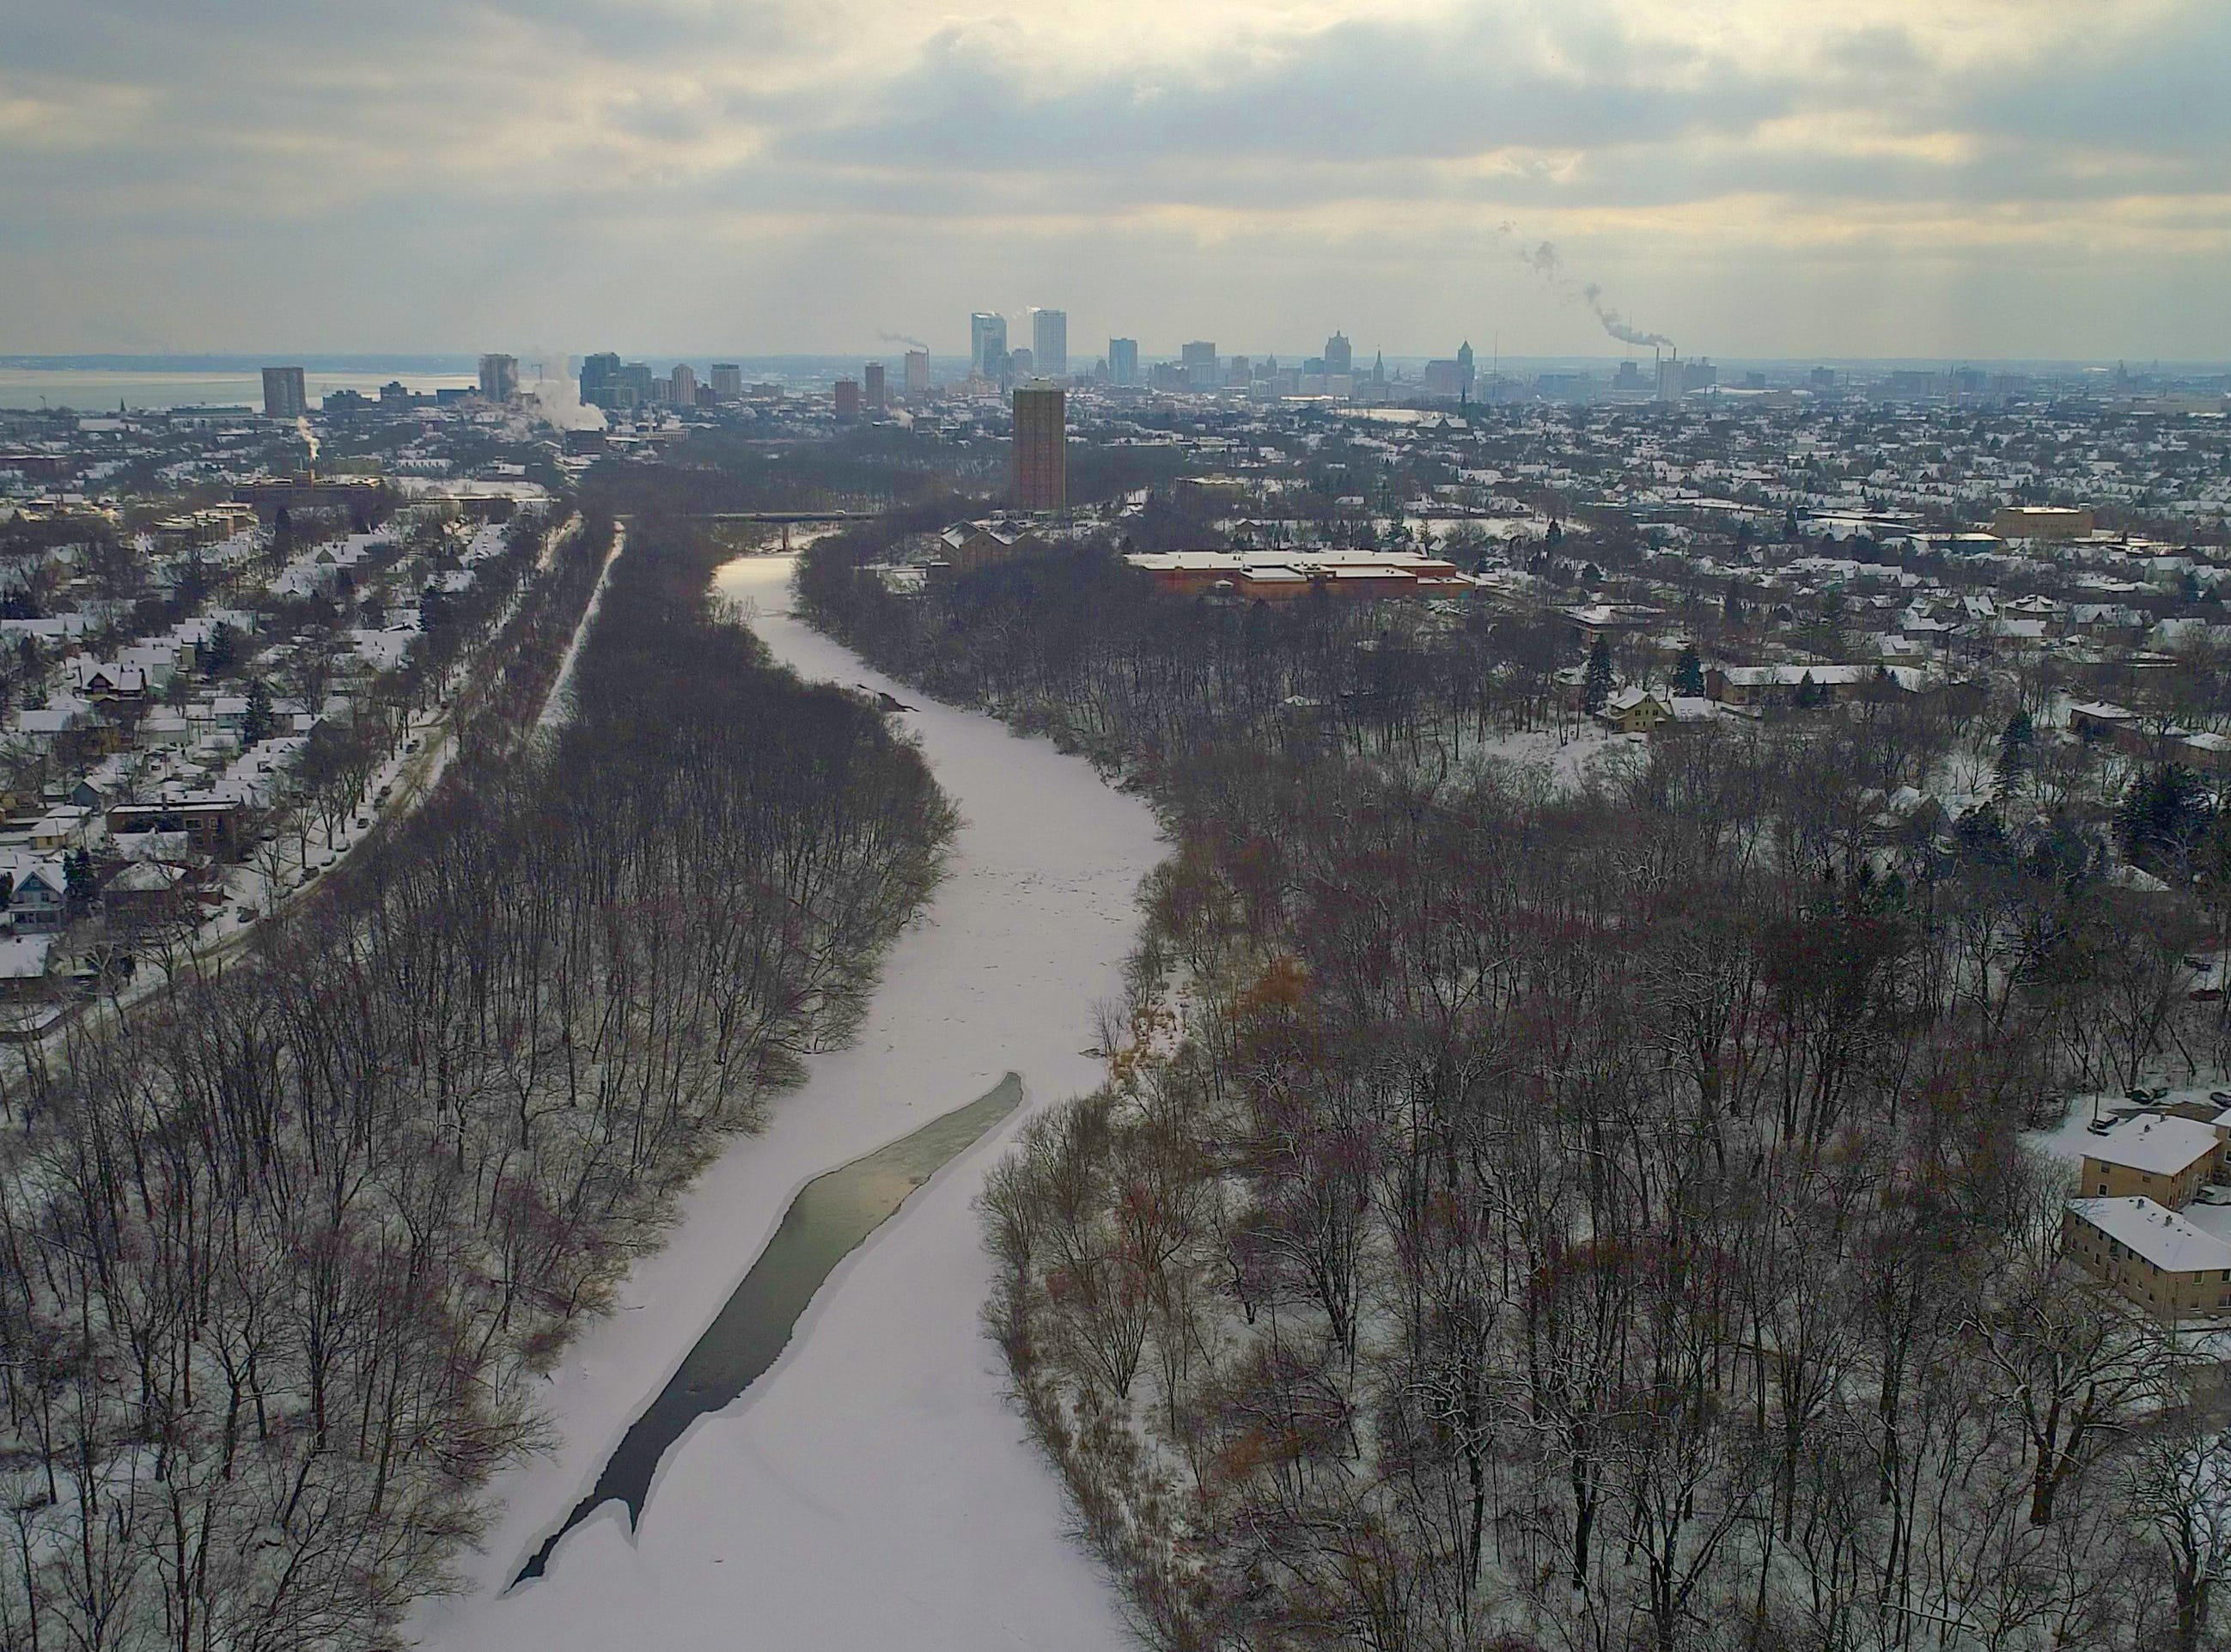 An iced-over Milwaukee River leads south from Shorewood as the Milwaukee skyline is seen in the background.